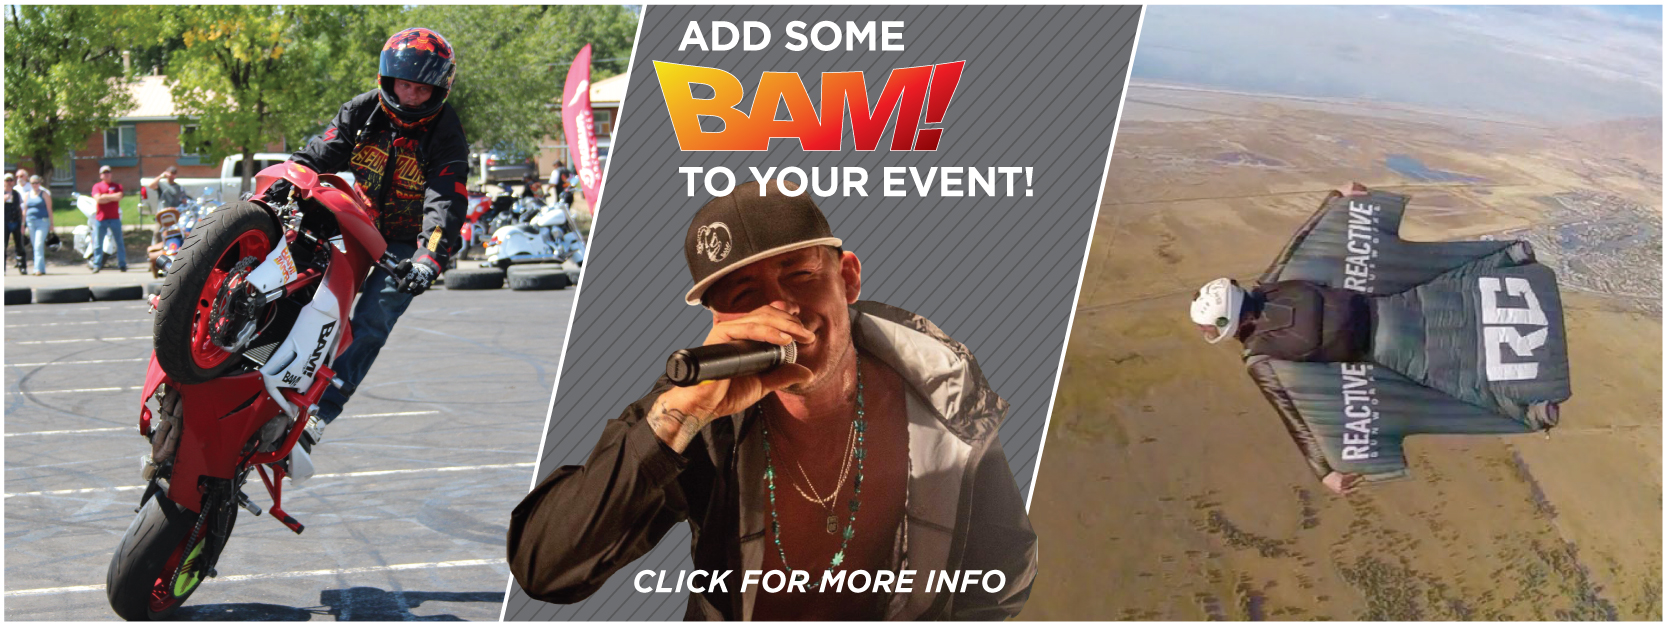 Bam Events Banner